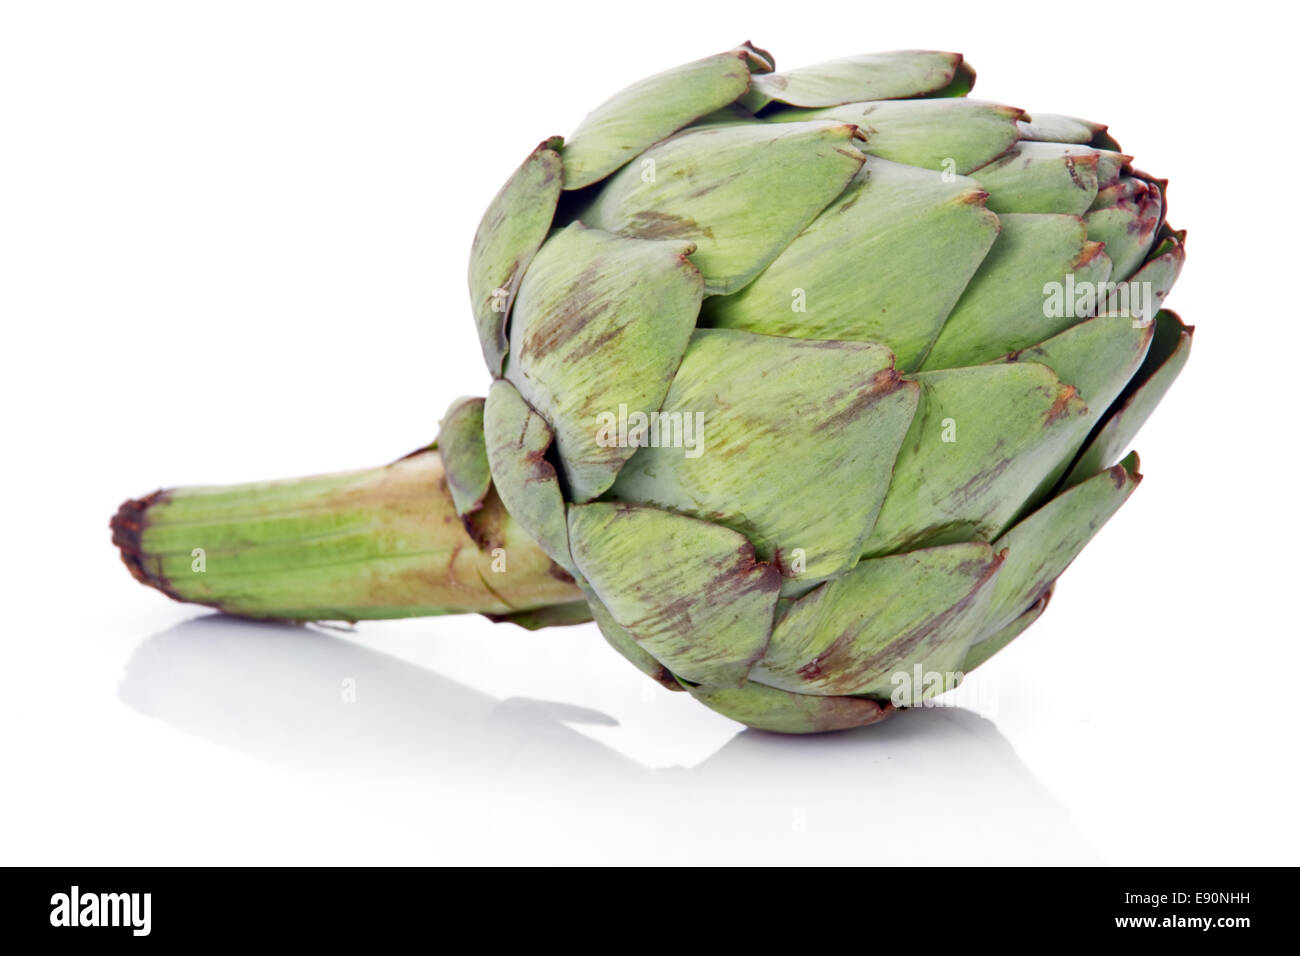 Ripe green artichoke vegetable isolated - Stock Image